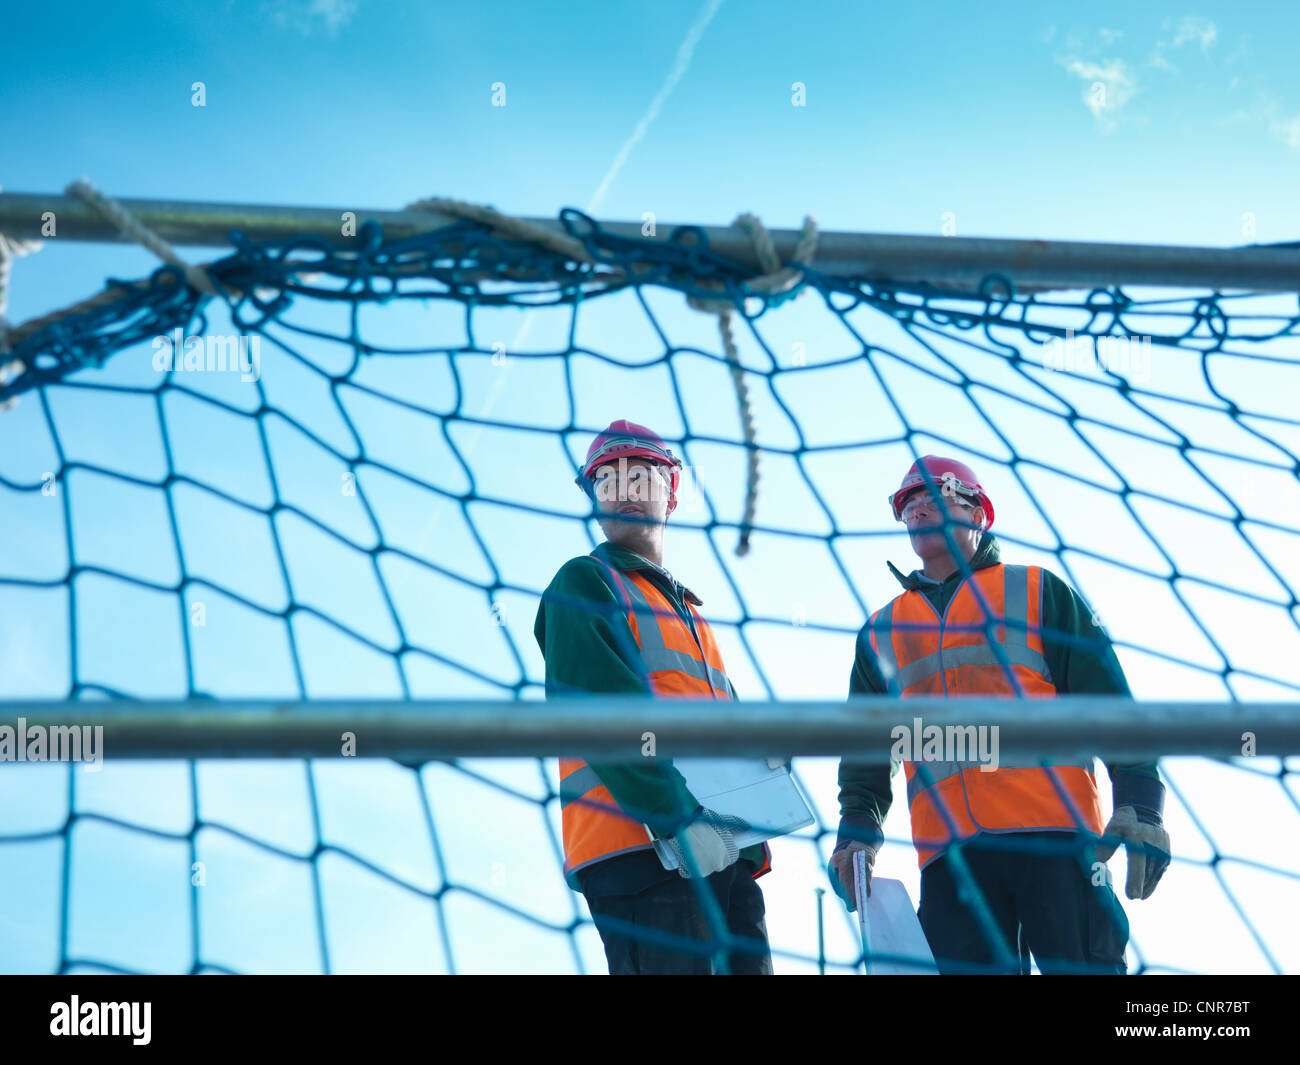 Workers standing behind fence netting - Stock Image